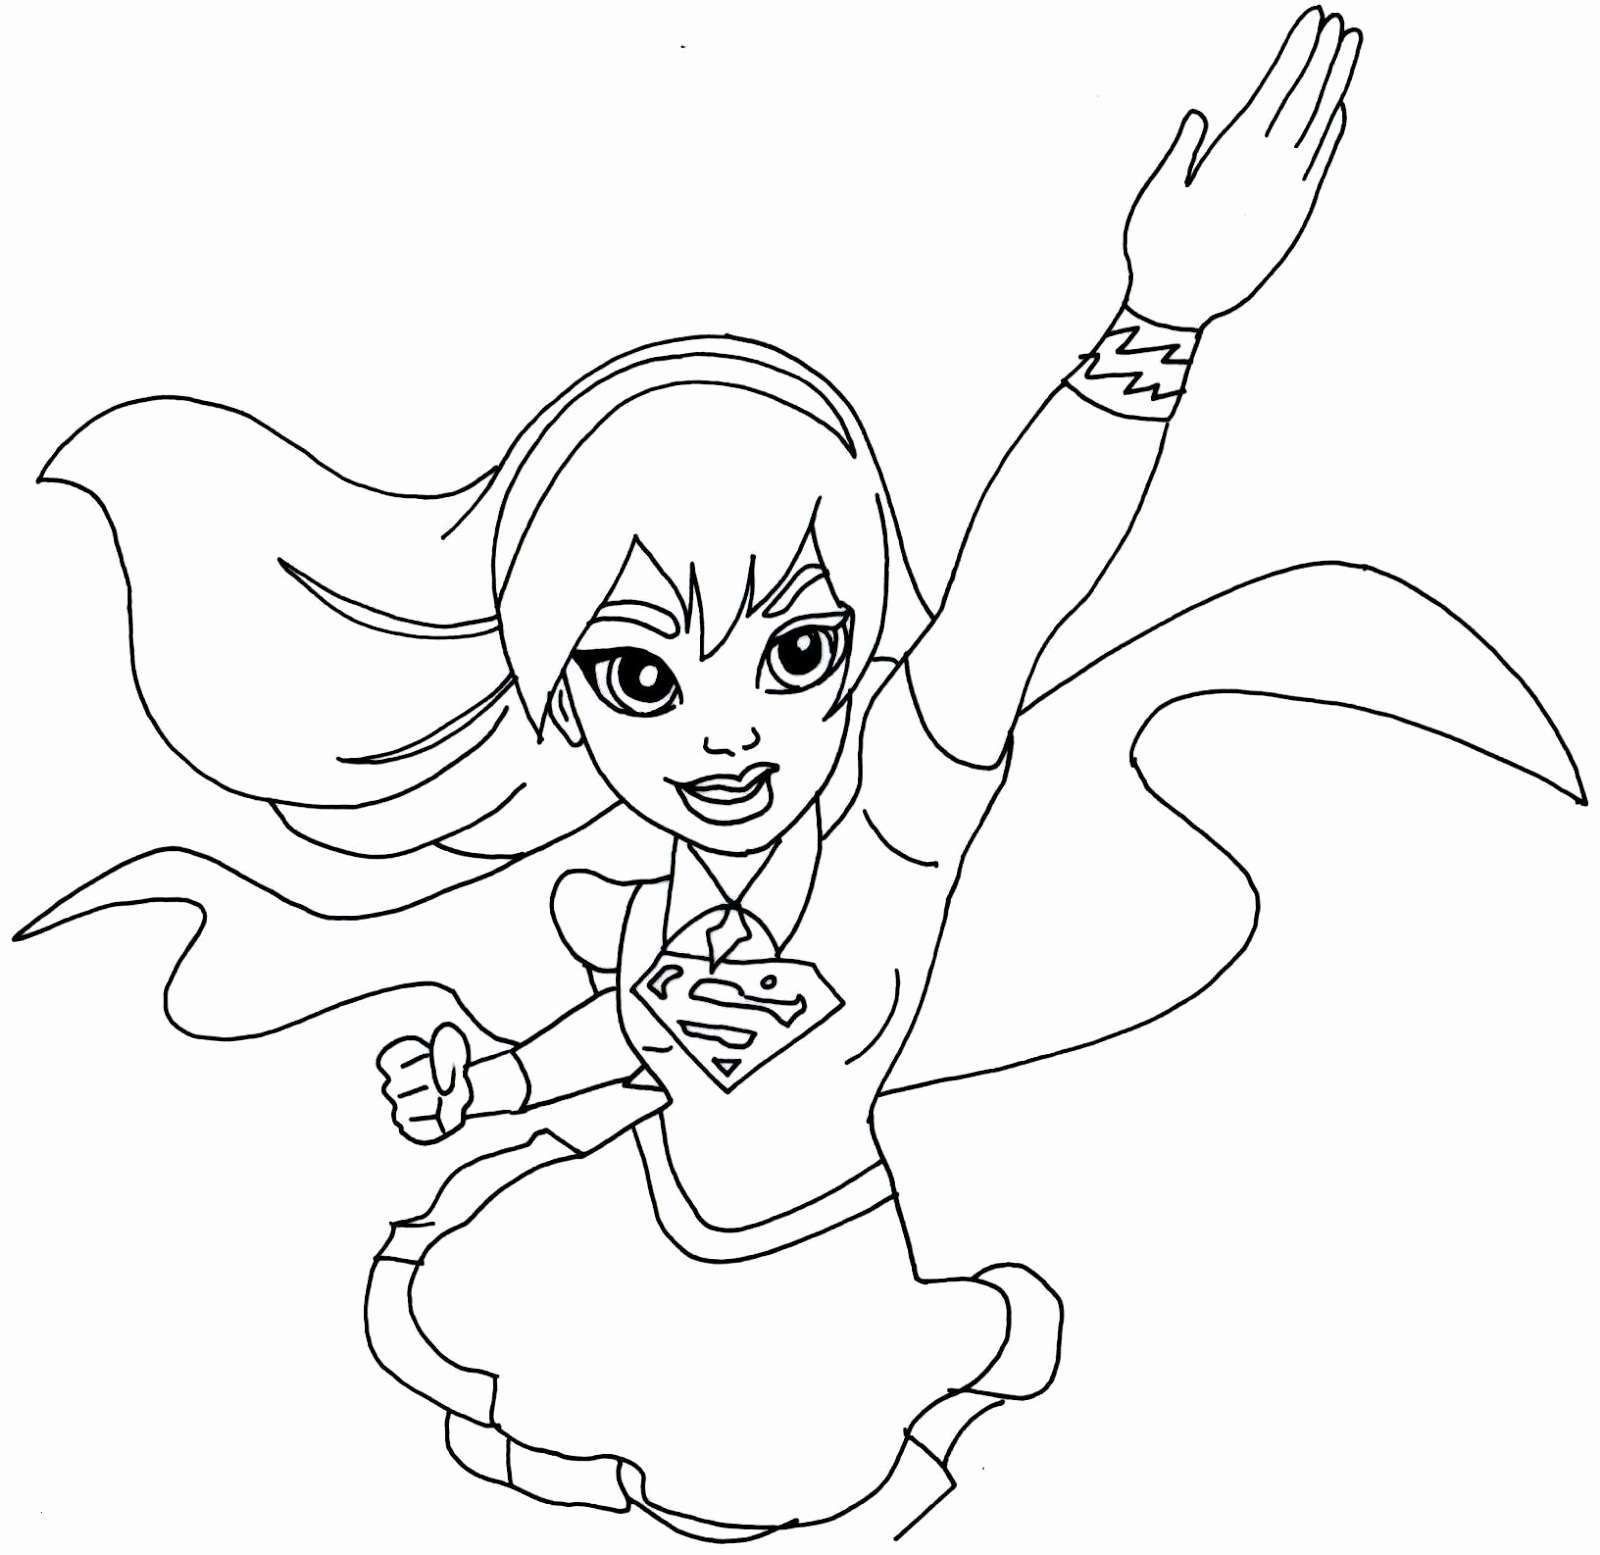 Girl Superhero Coloring Pages  to Print 17d - Free For kids